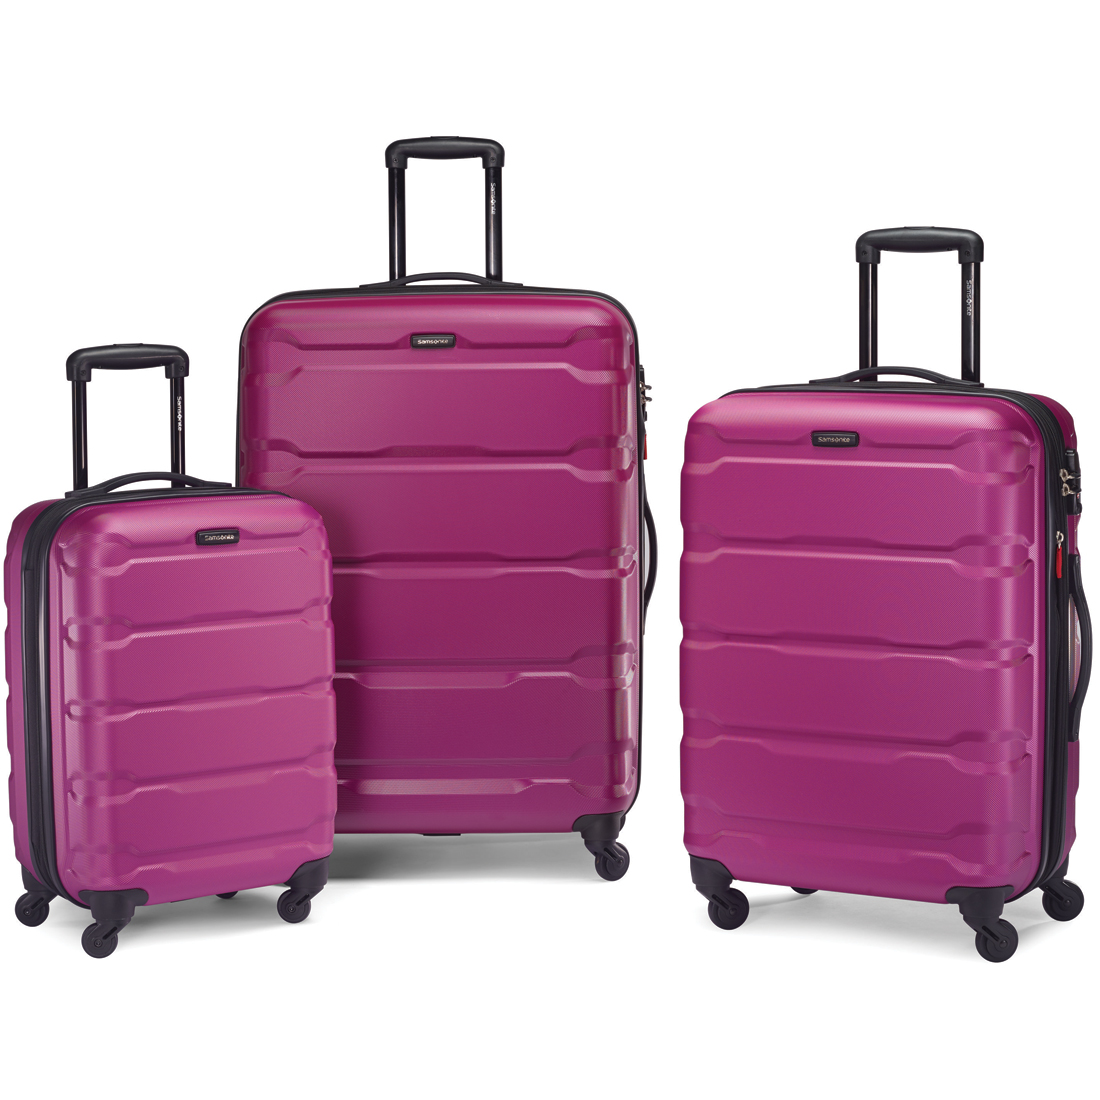 Samsonite-Omni-24-Inch-Hardside-Spinner-Luggage-Suitcase-Choose-Color thumbnail 16